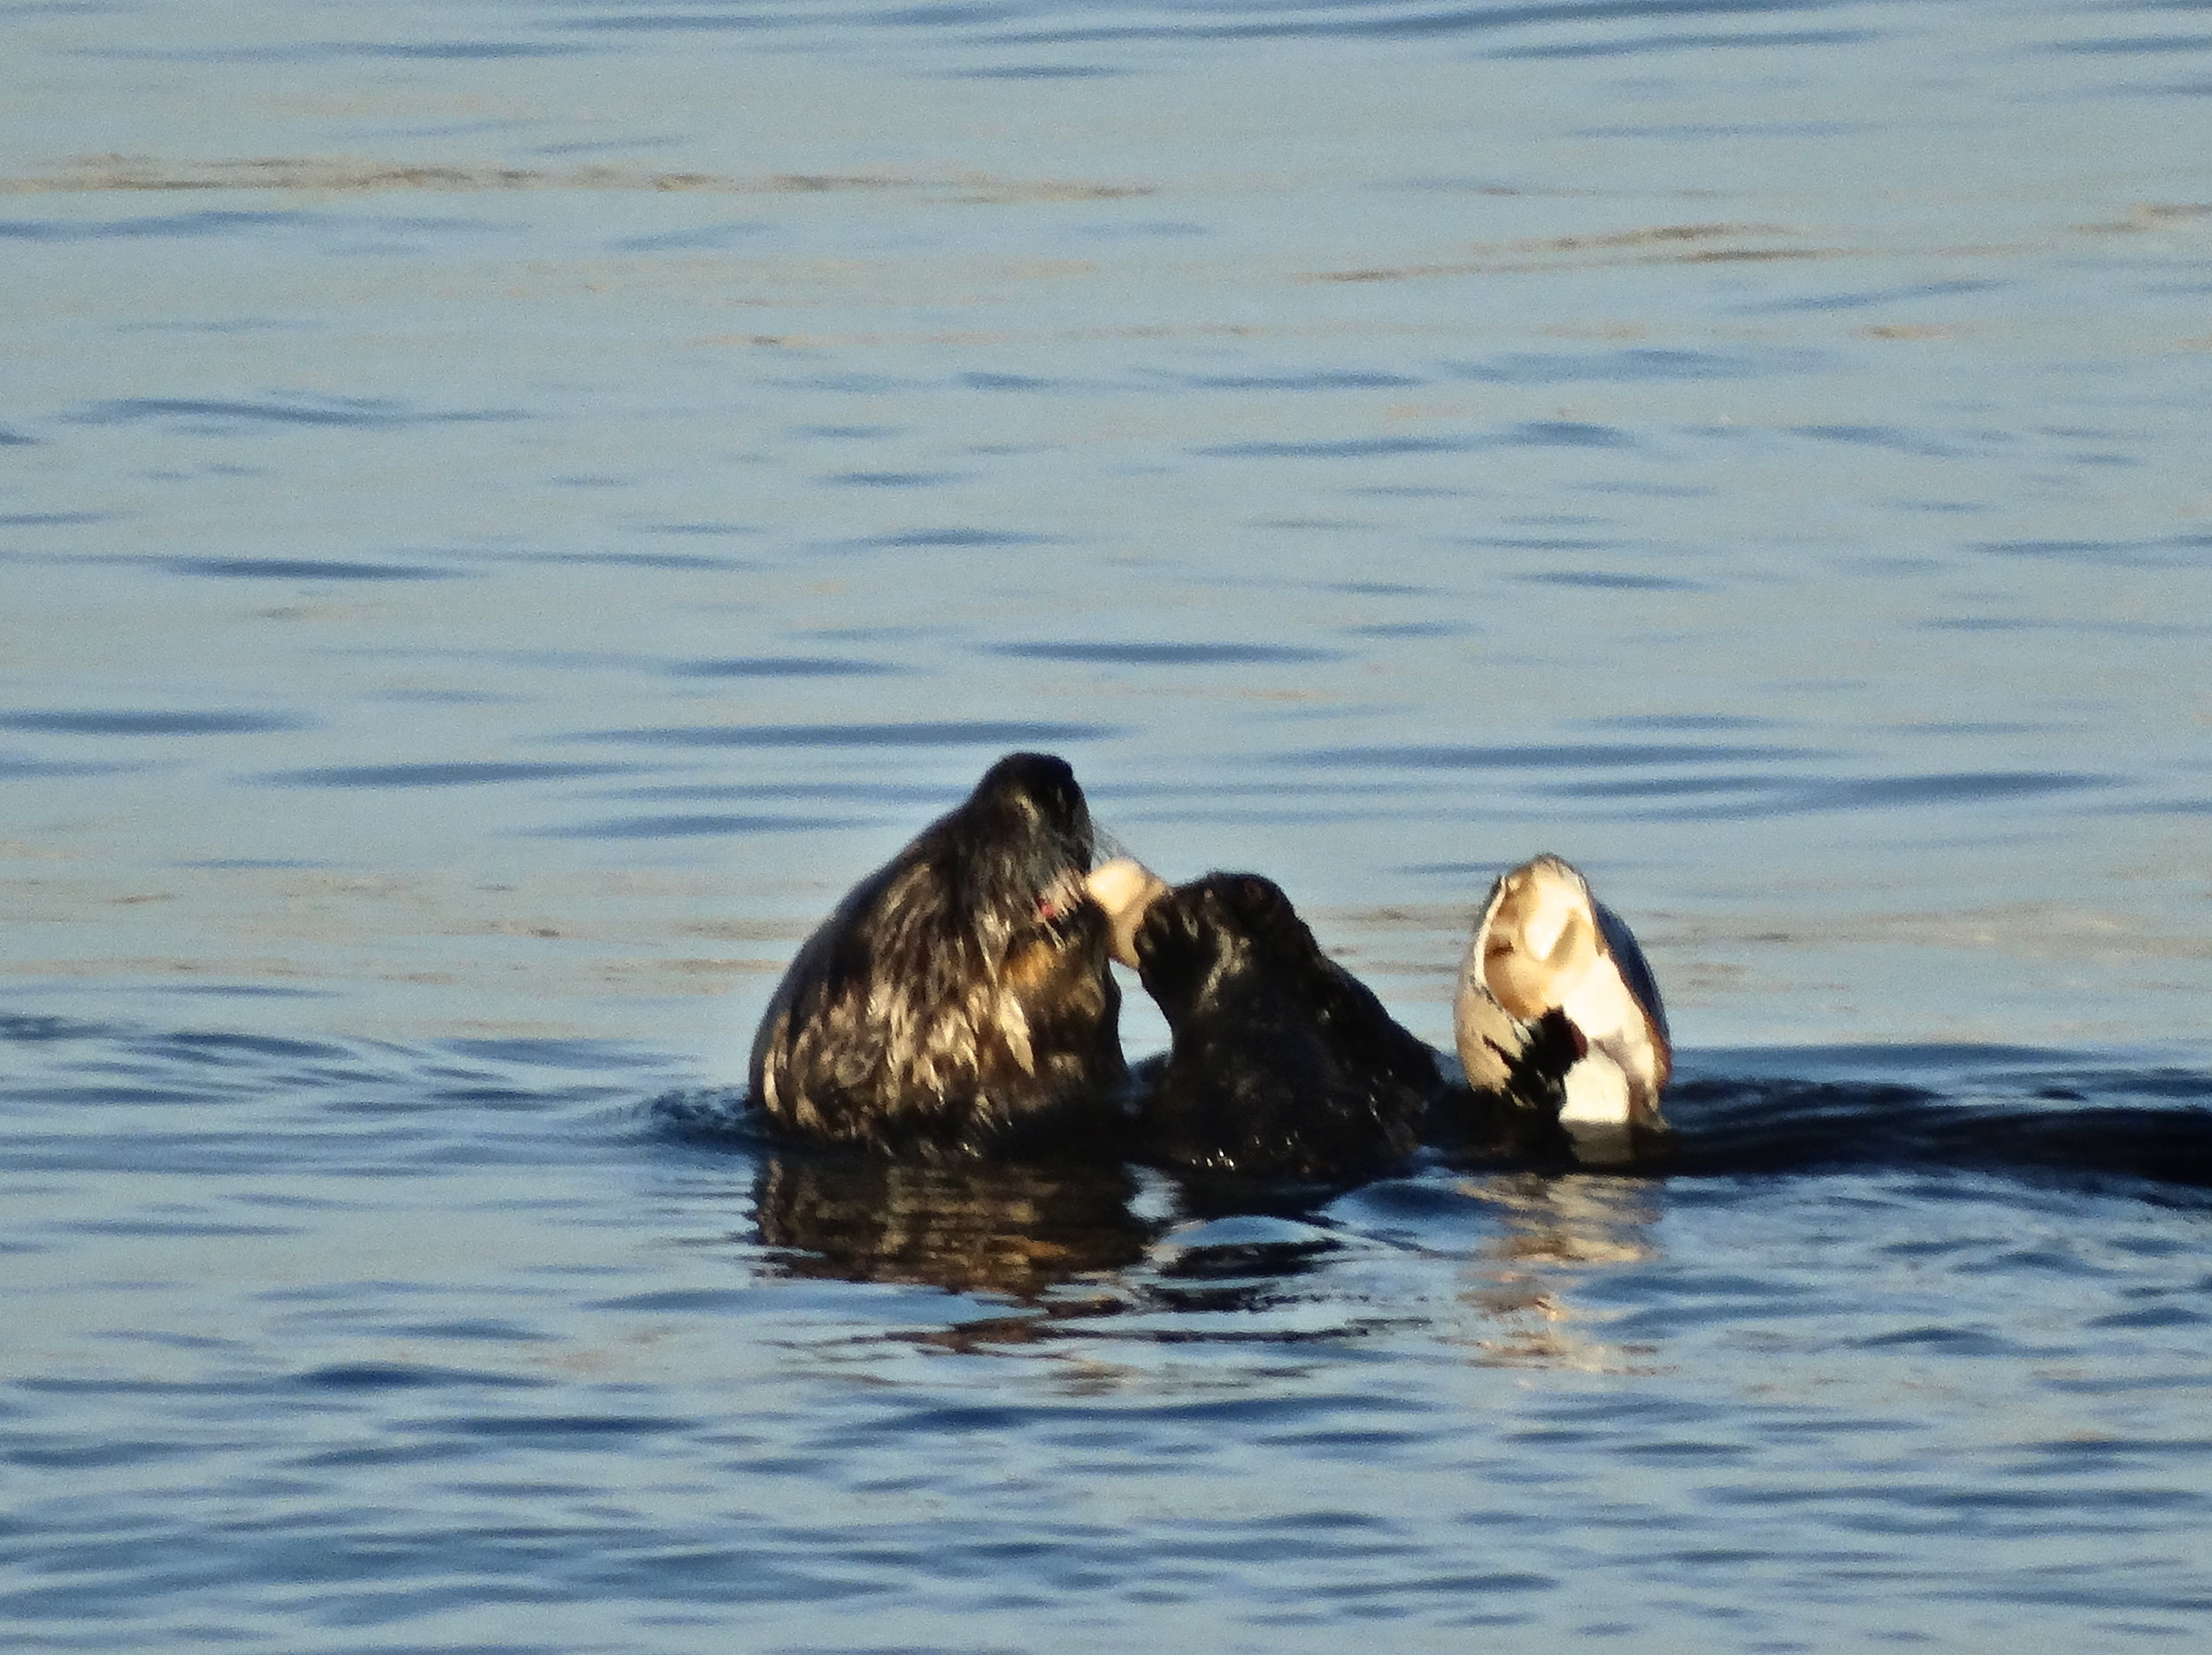 Sea Otter Floats, Noms, and Navigates the High Seas 2